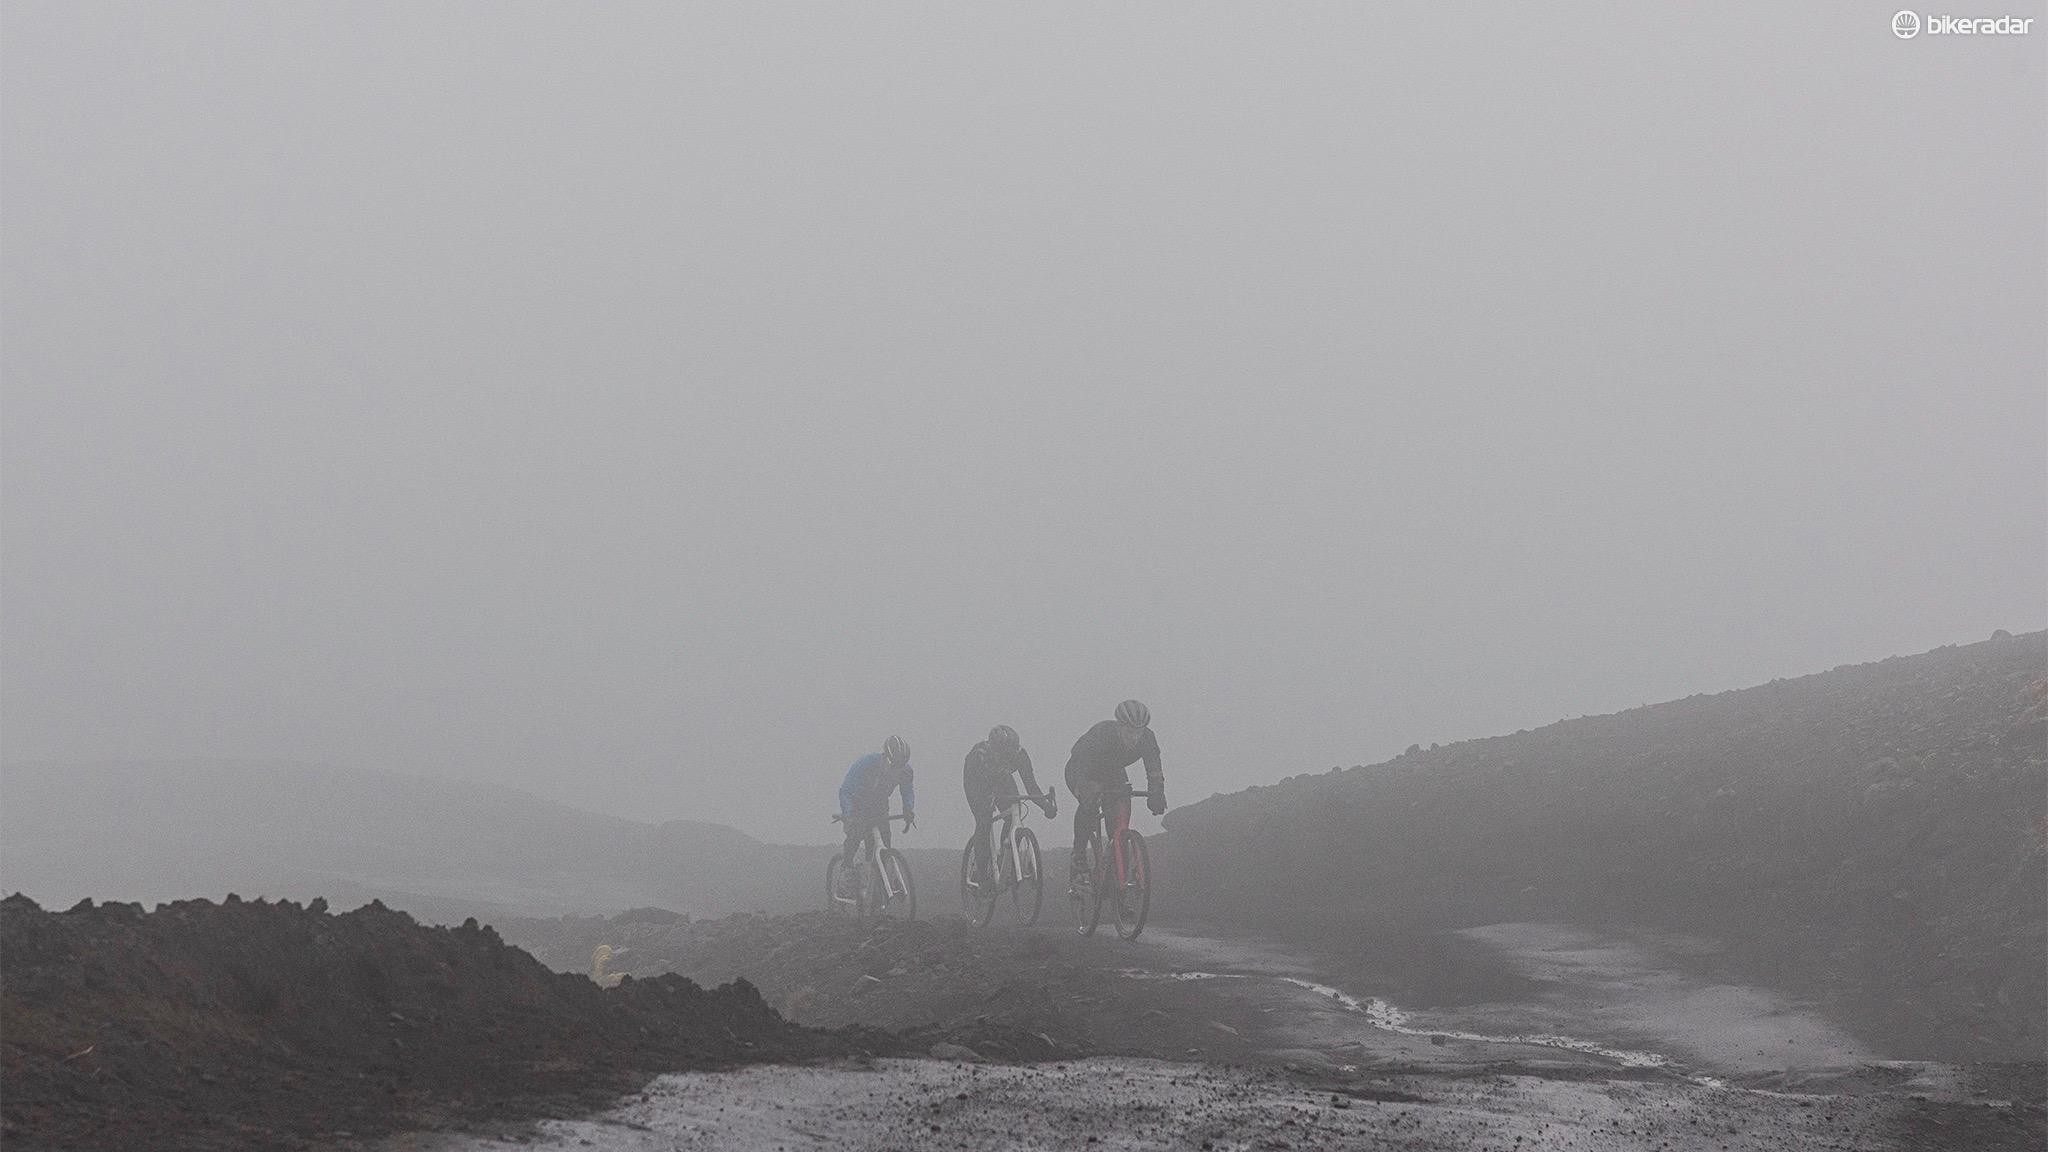 As the mist descended, visibility was low making descents sketchy